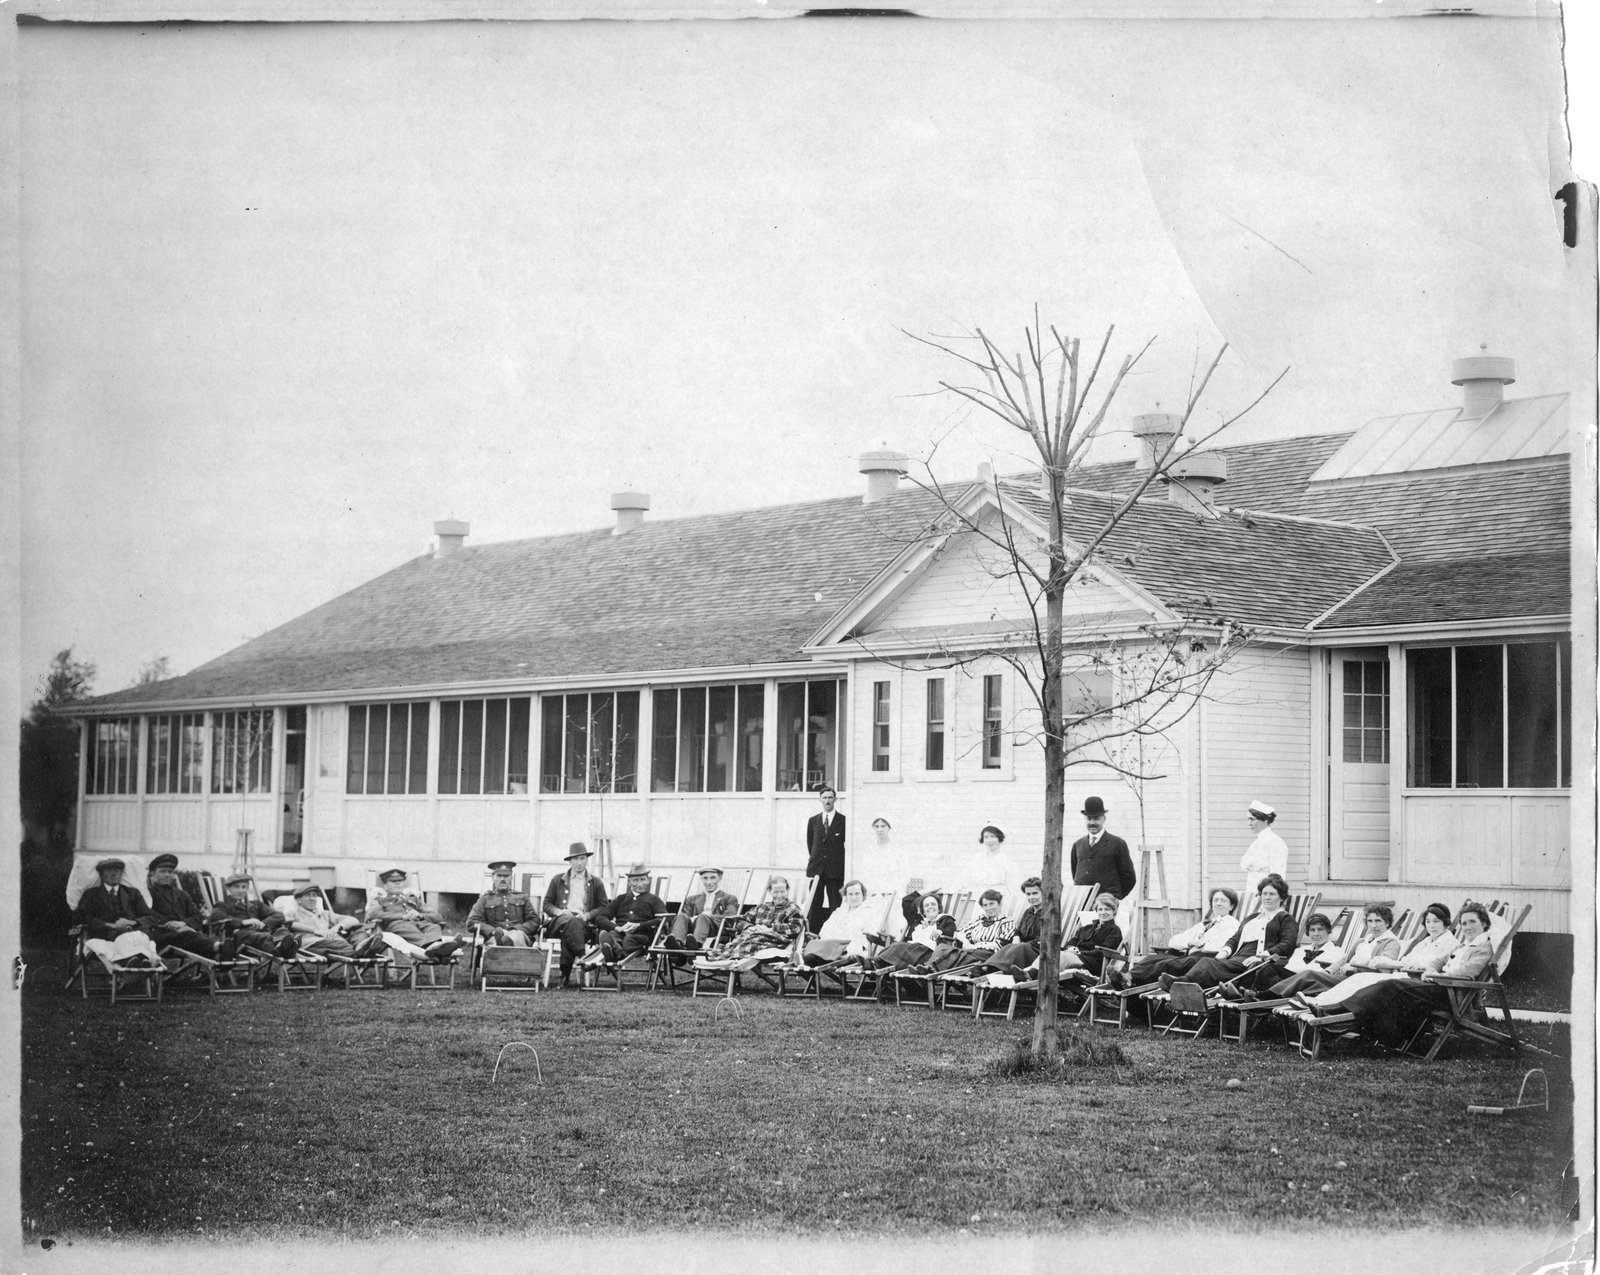 Twnety people sit outside in a row in lawn chairs in front of a medical building. doctors and nurses stand behind them.